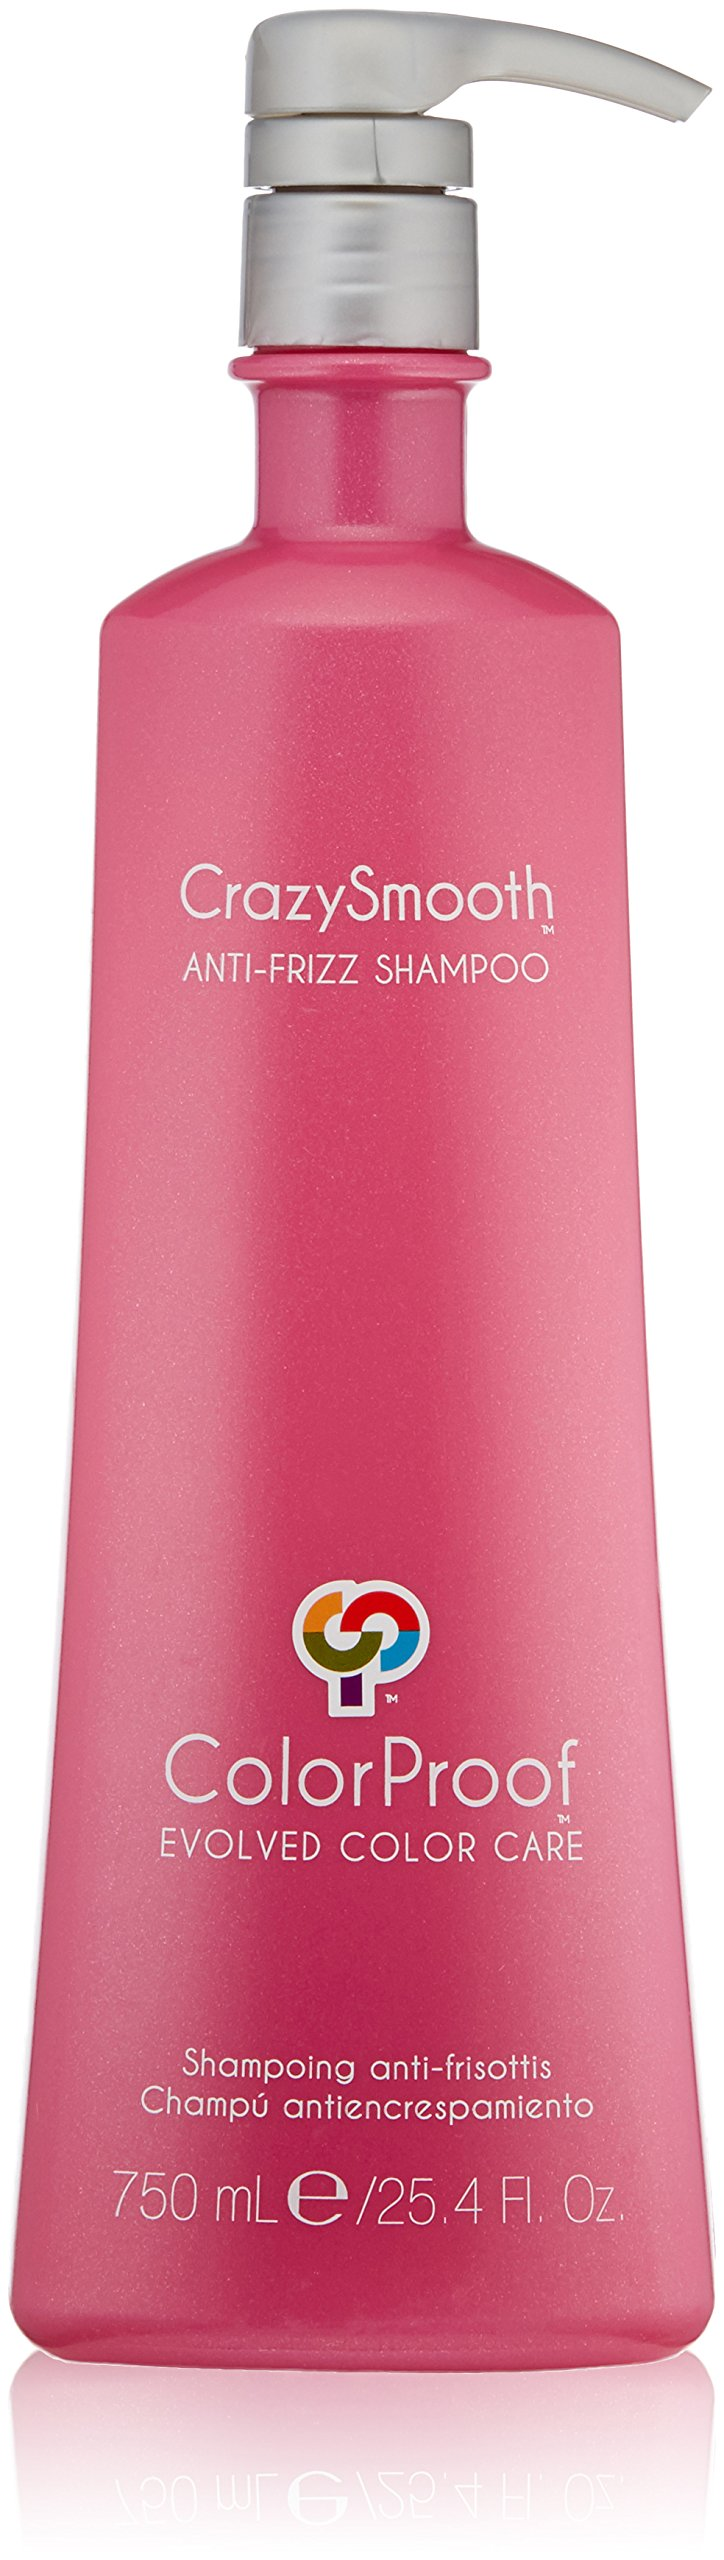 ColorProof Evolved Color Care Crazysmooth Anti-Frizz Shampoo, 25.4 Fl Oz